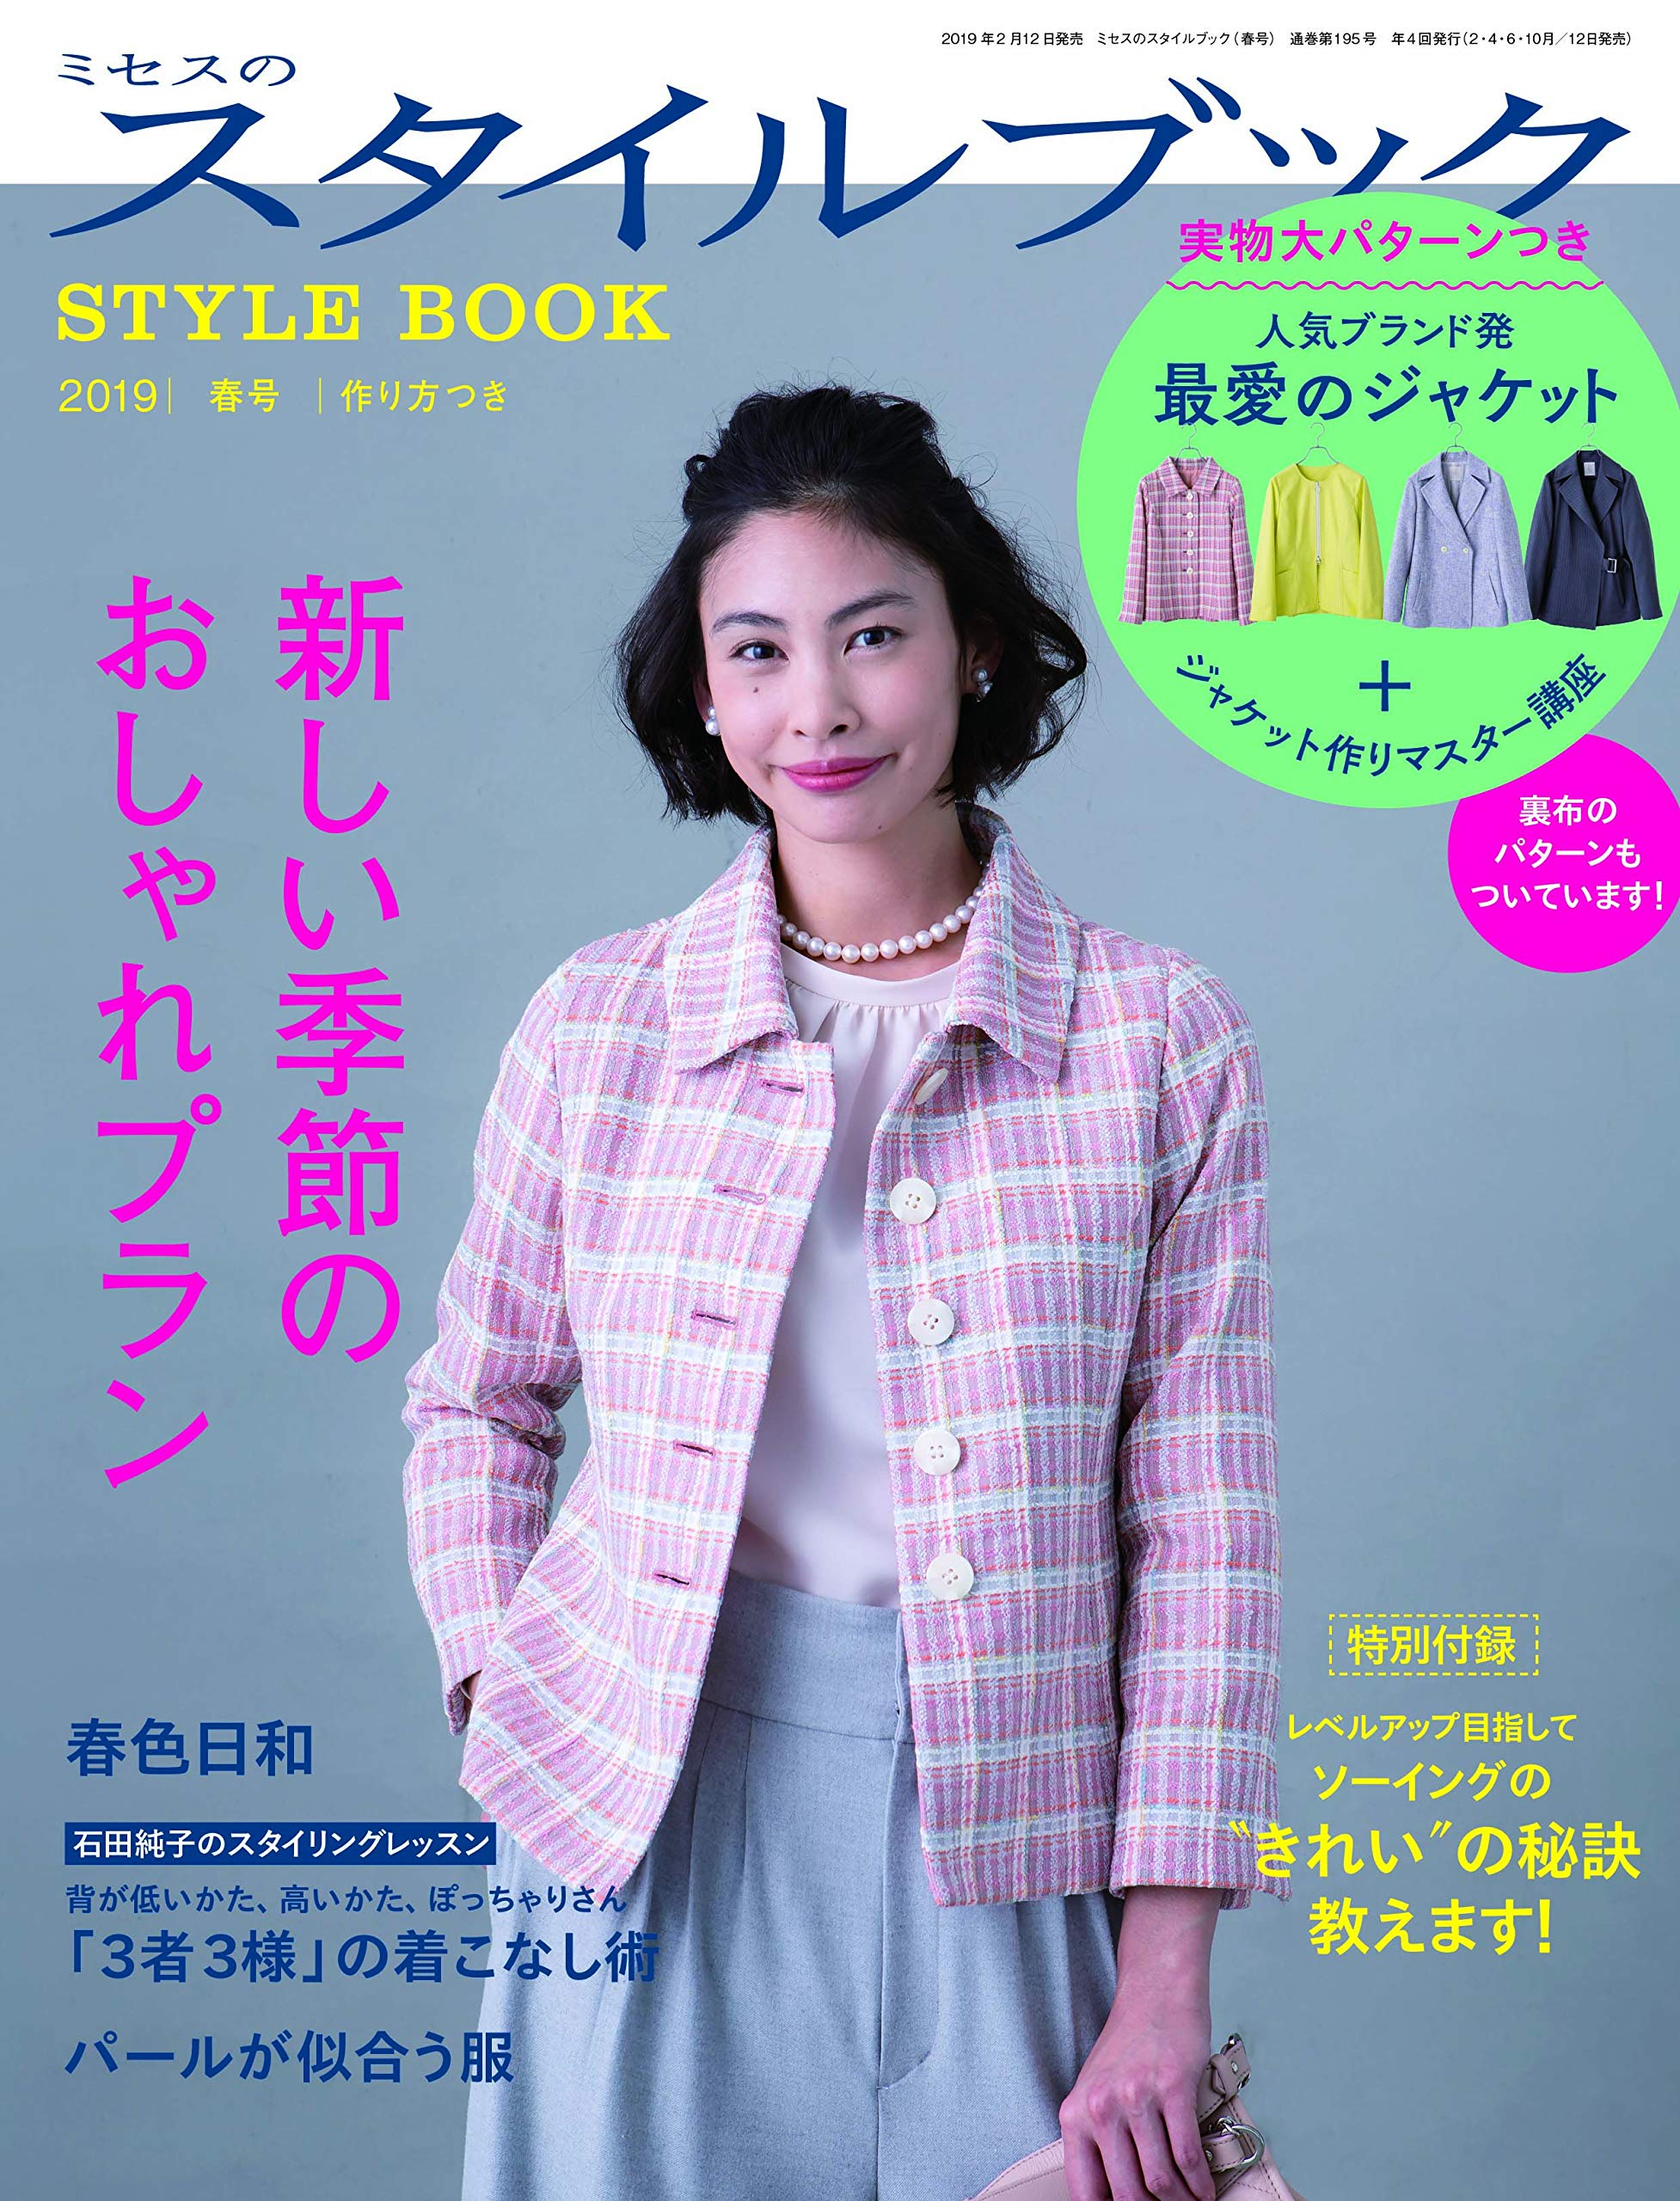 Mrs.Style Book 2019 Spring